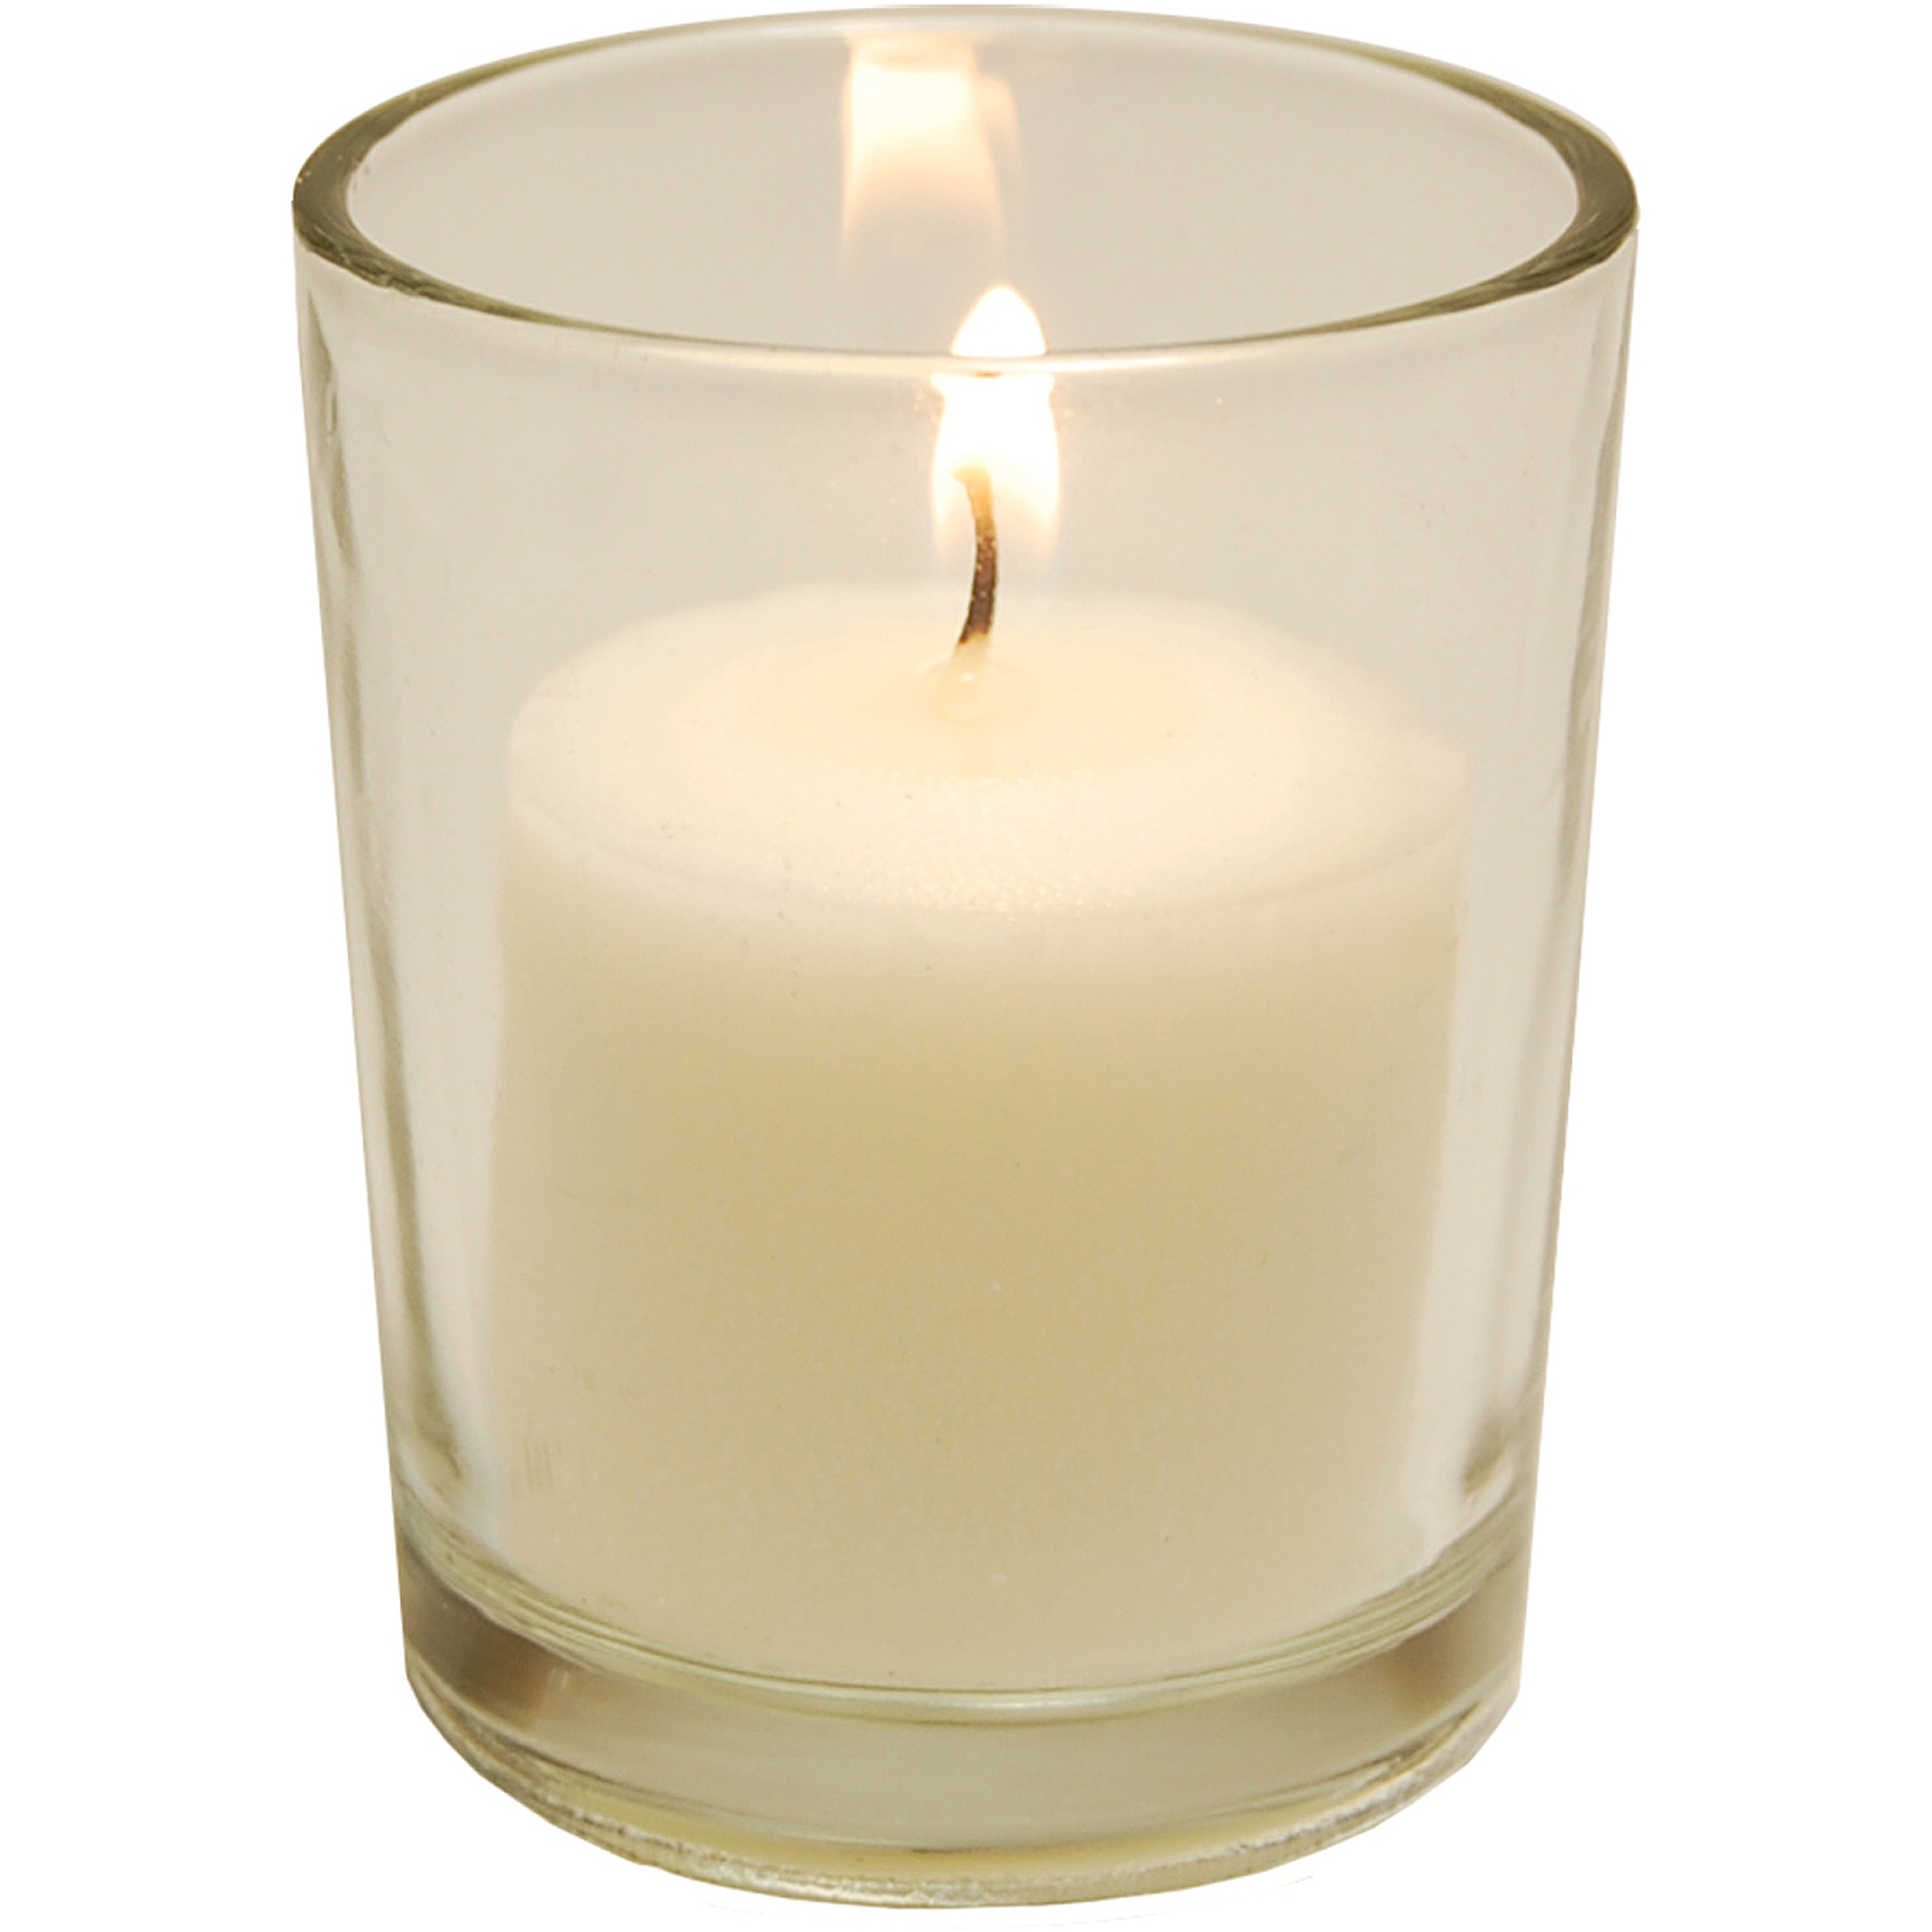 12 Glass Candle Holders with Seventy-Two 10-Hour Votive Candles in Clear or Frosted by JH Specialties